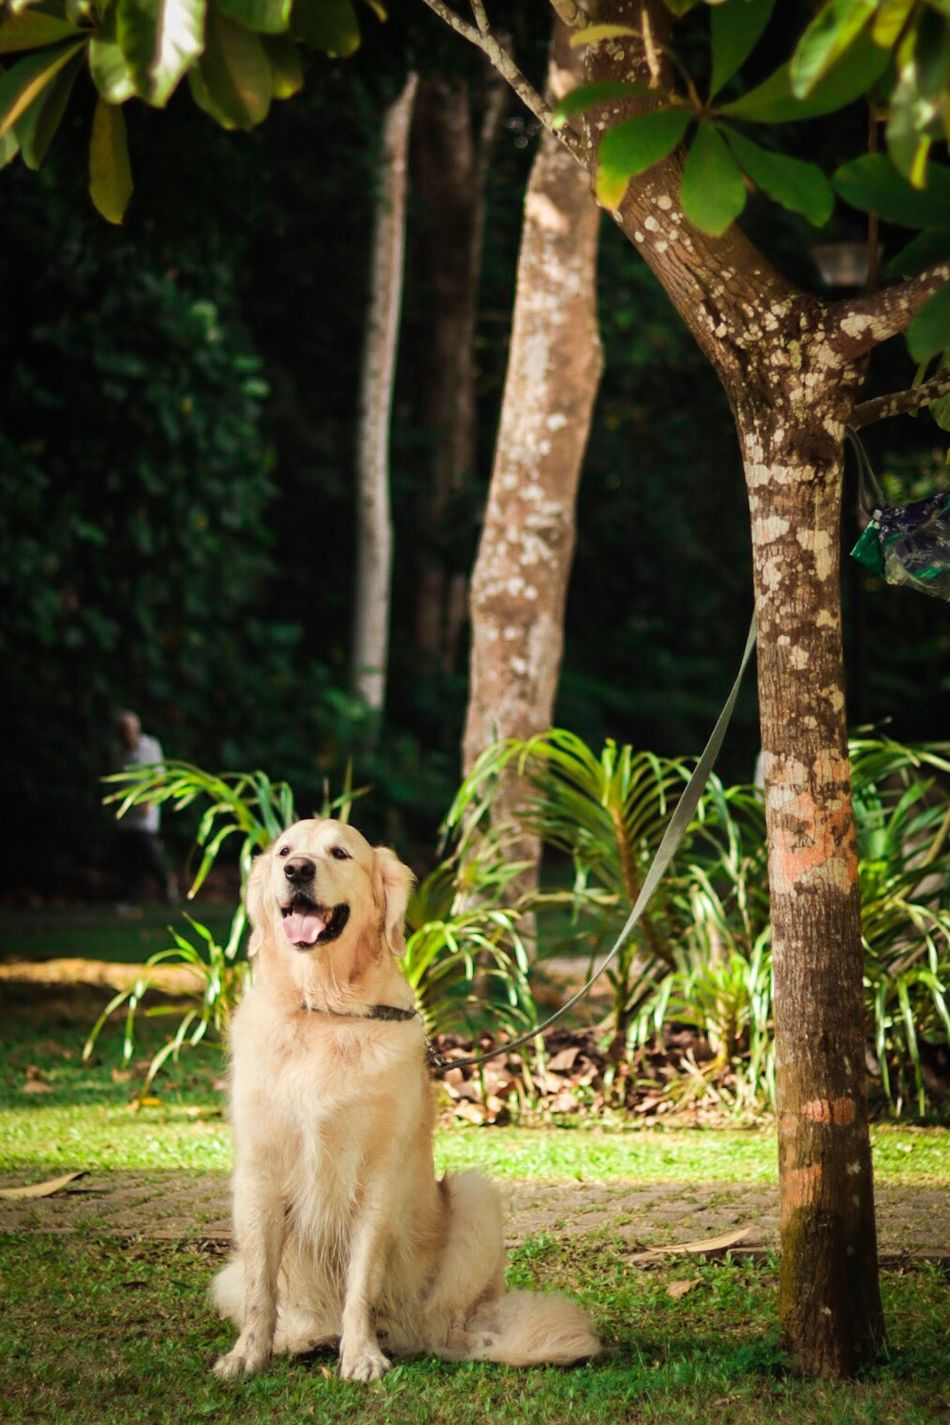 Dogs love the shade too One Animal Dog Pets Tree Animal Themes Domestic Animals Lush Foliage Animal Mammal No People Plant Outdoors Yawning Day Pet Equipment Grass Nature